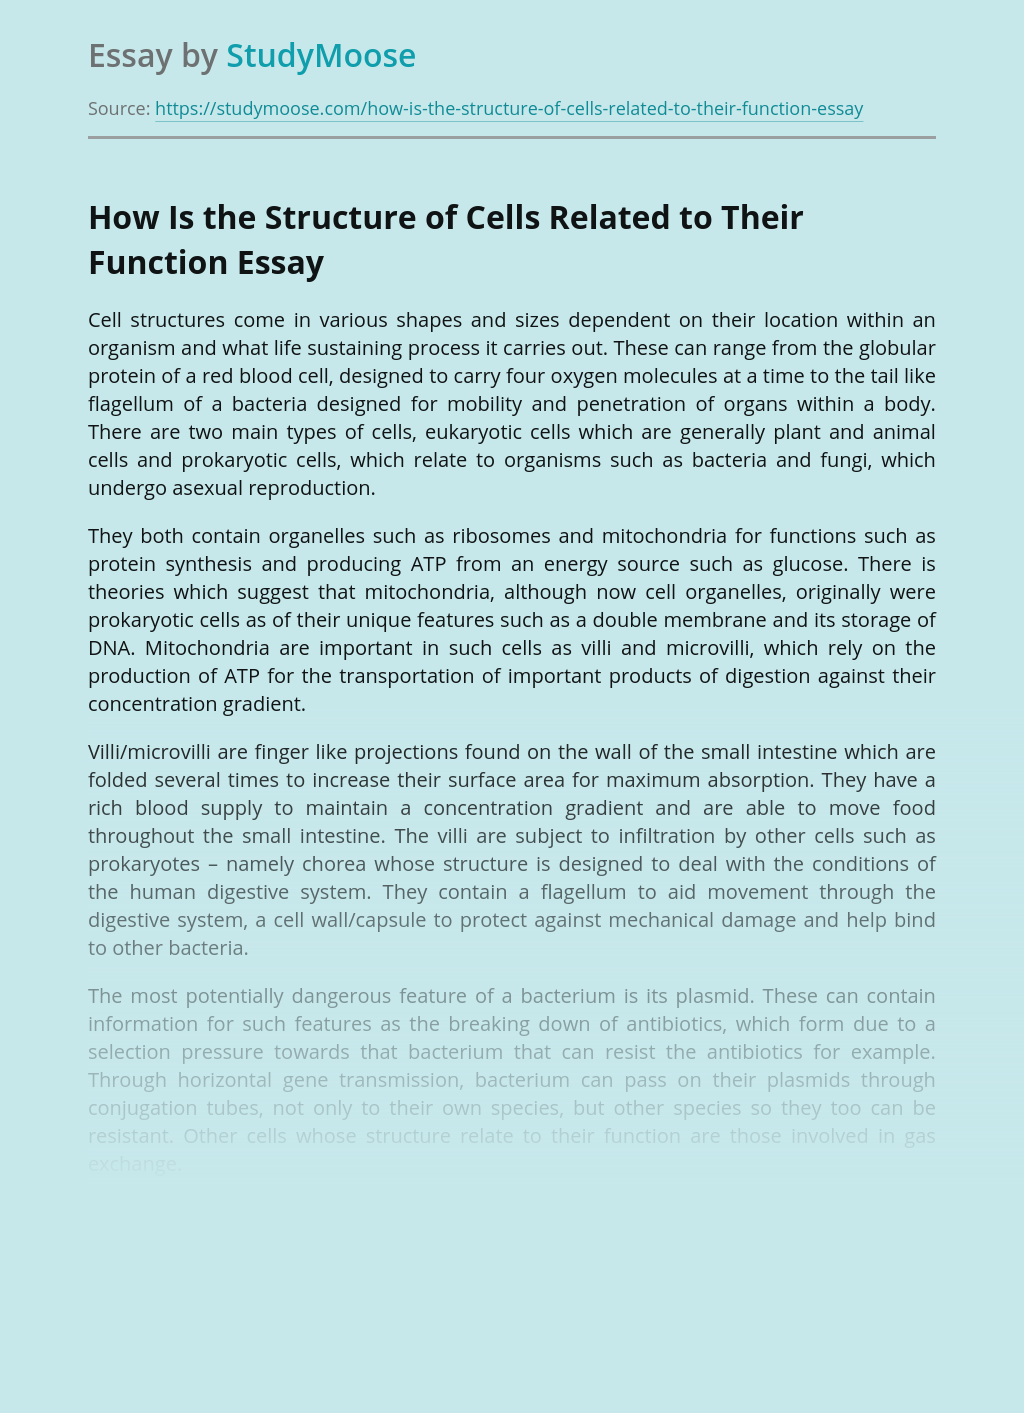 Cells Structures and Functions